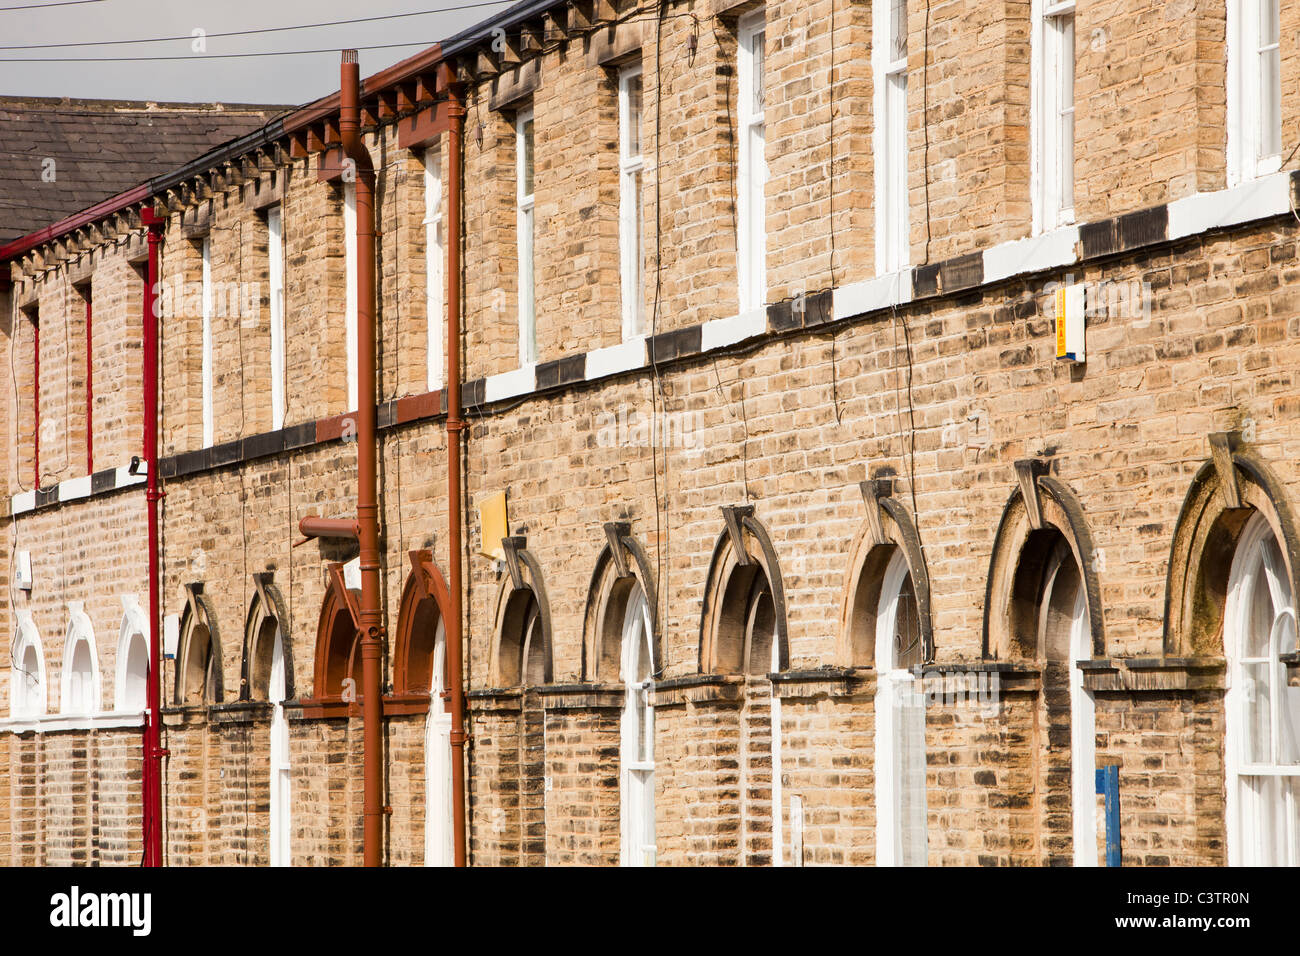 Workers houses near Salts mill in Saltaire, Yorkshire, UK. Stock Photo